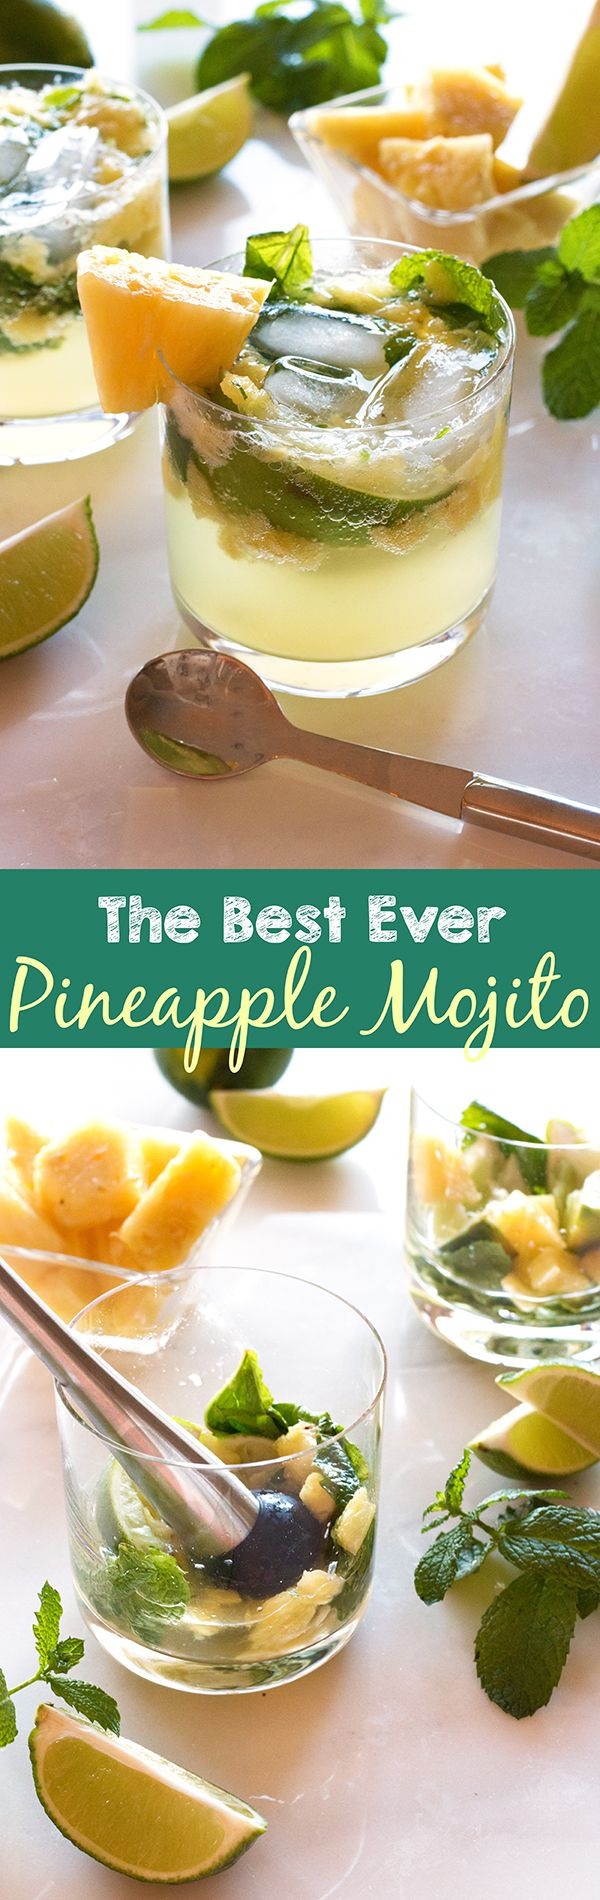 The Best Ever Pineapple Mojito | www.grainchanger.com